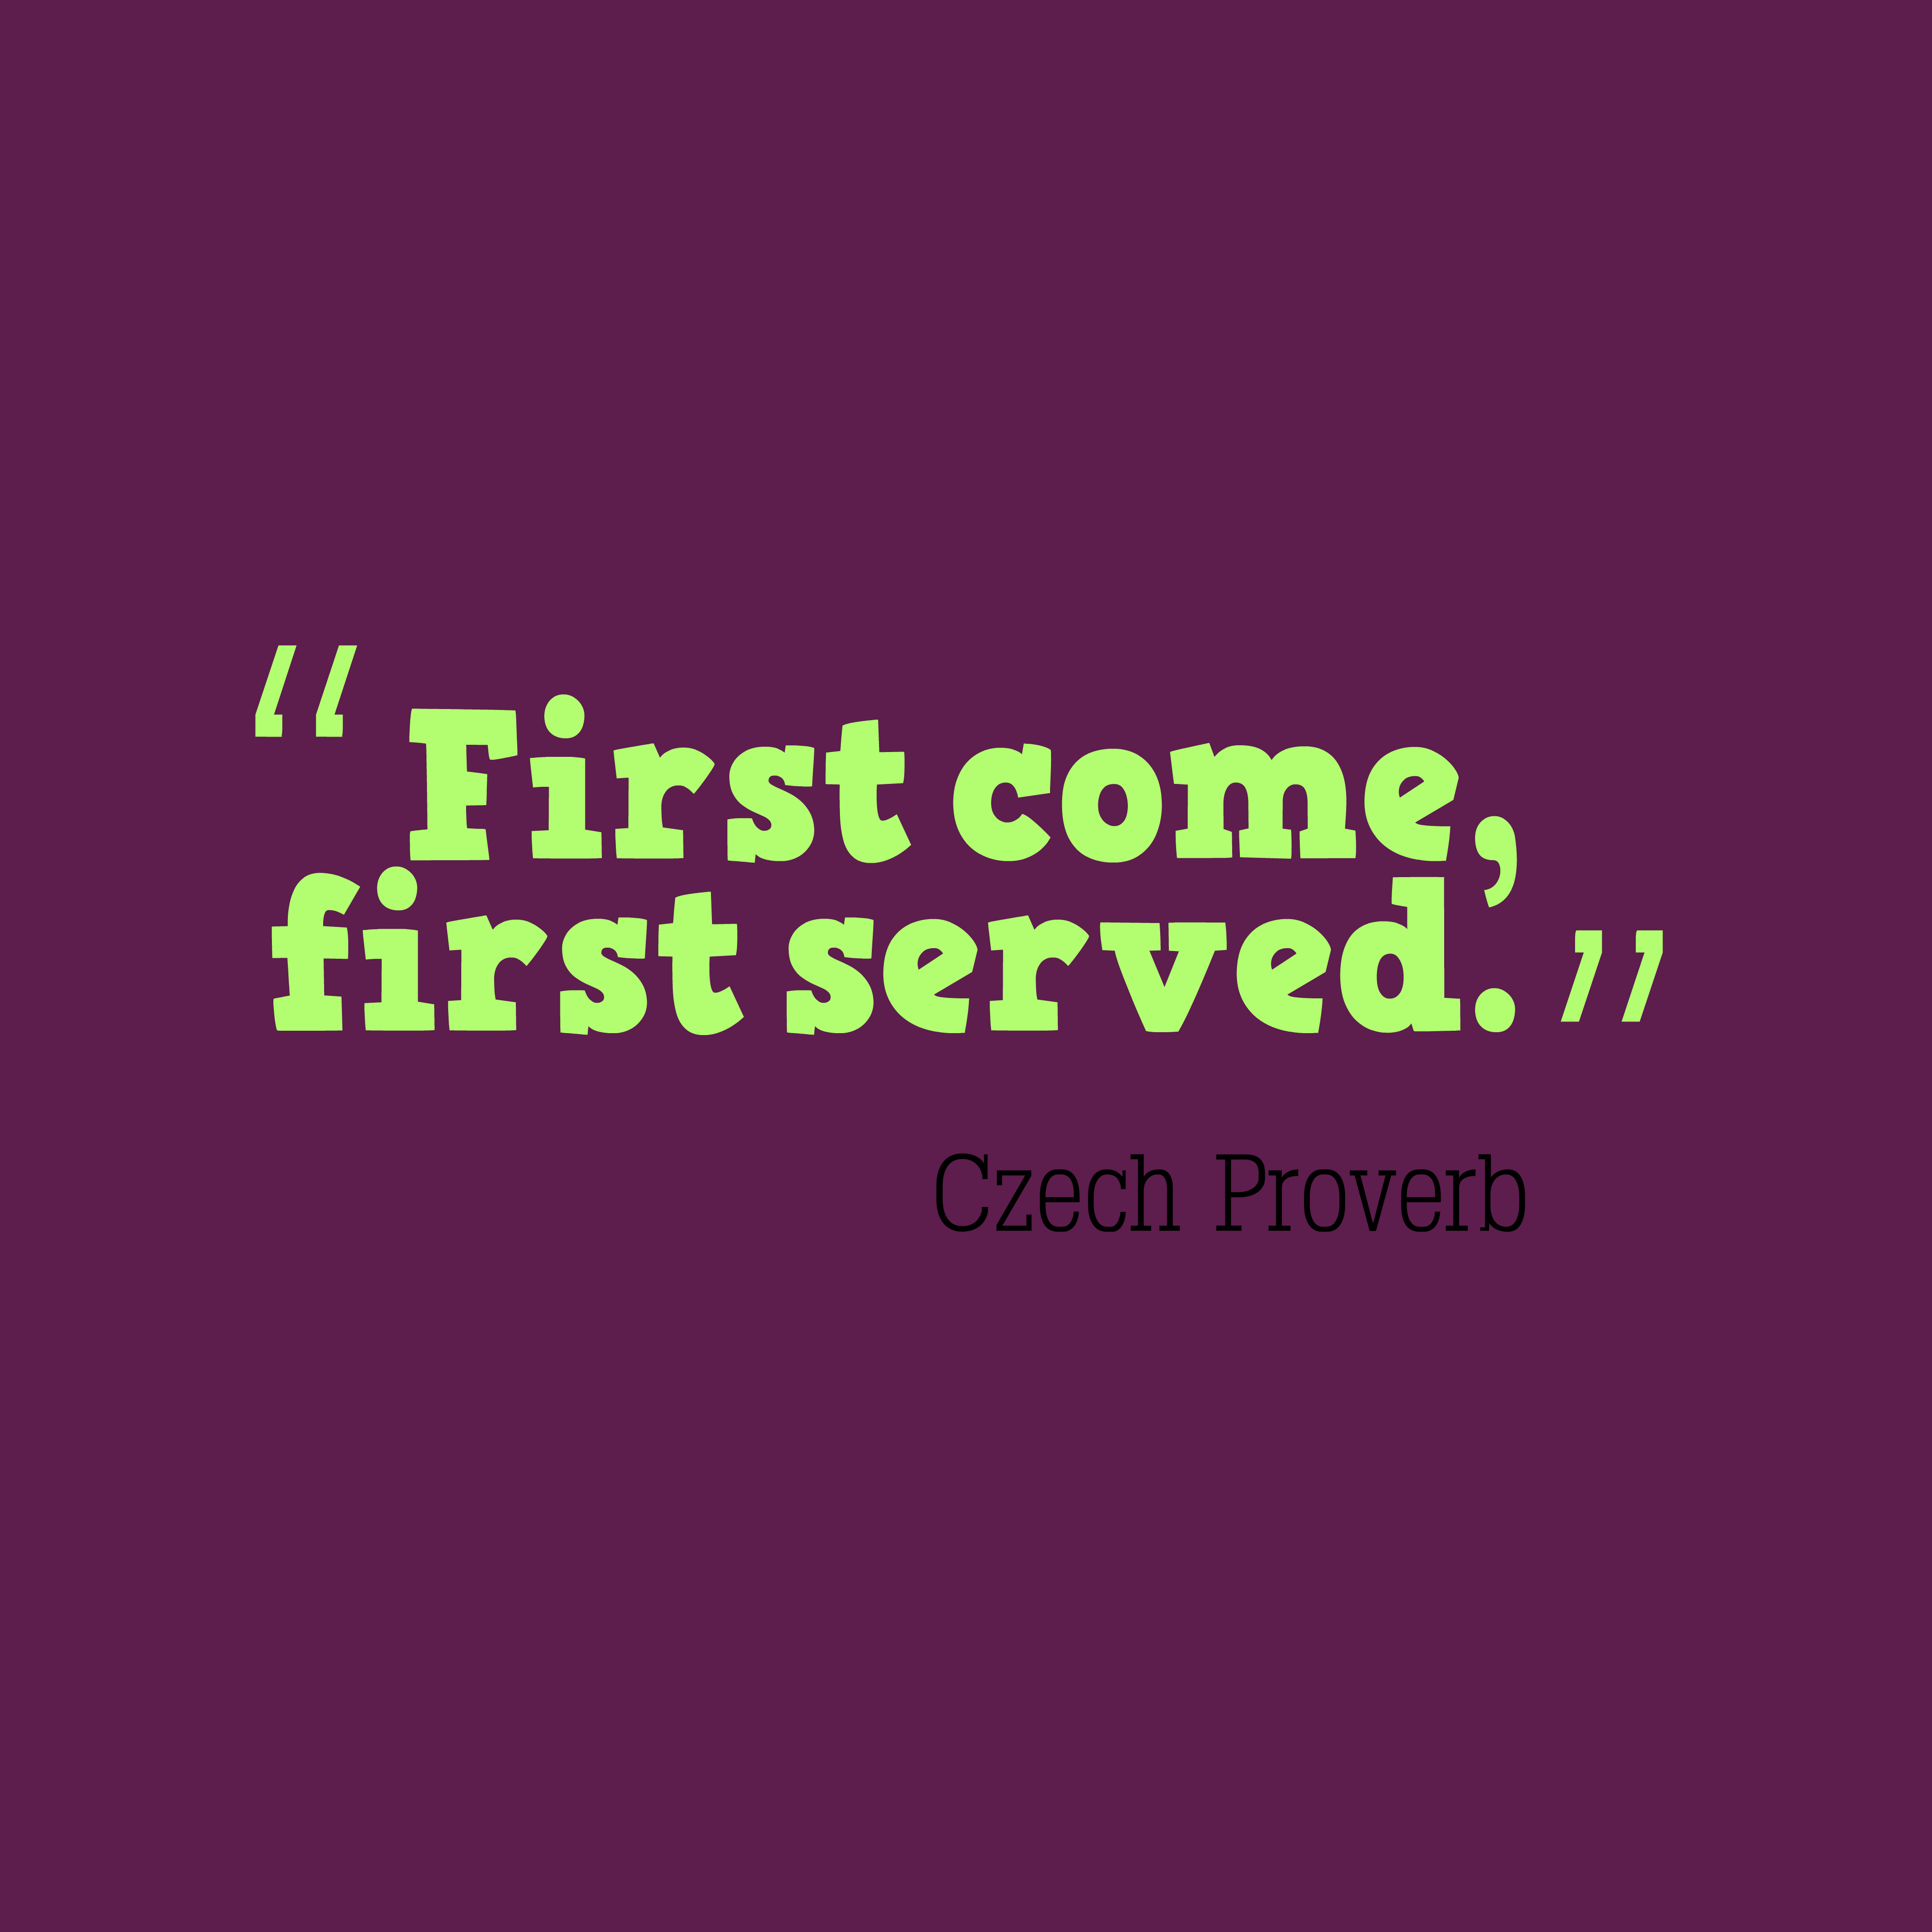 Quotes image of First come, first served.